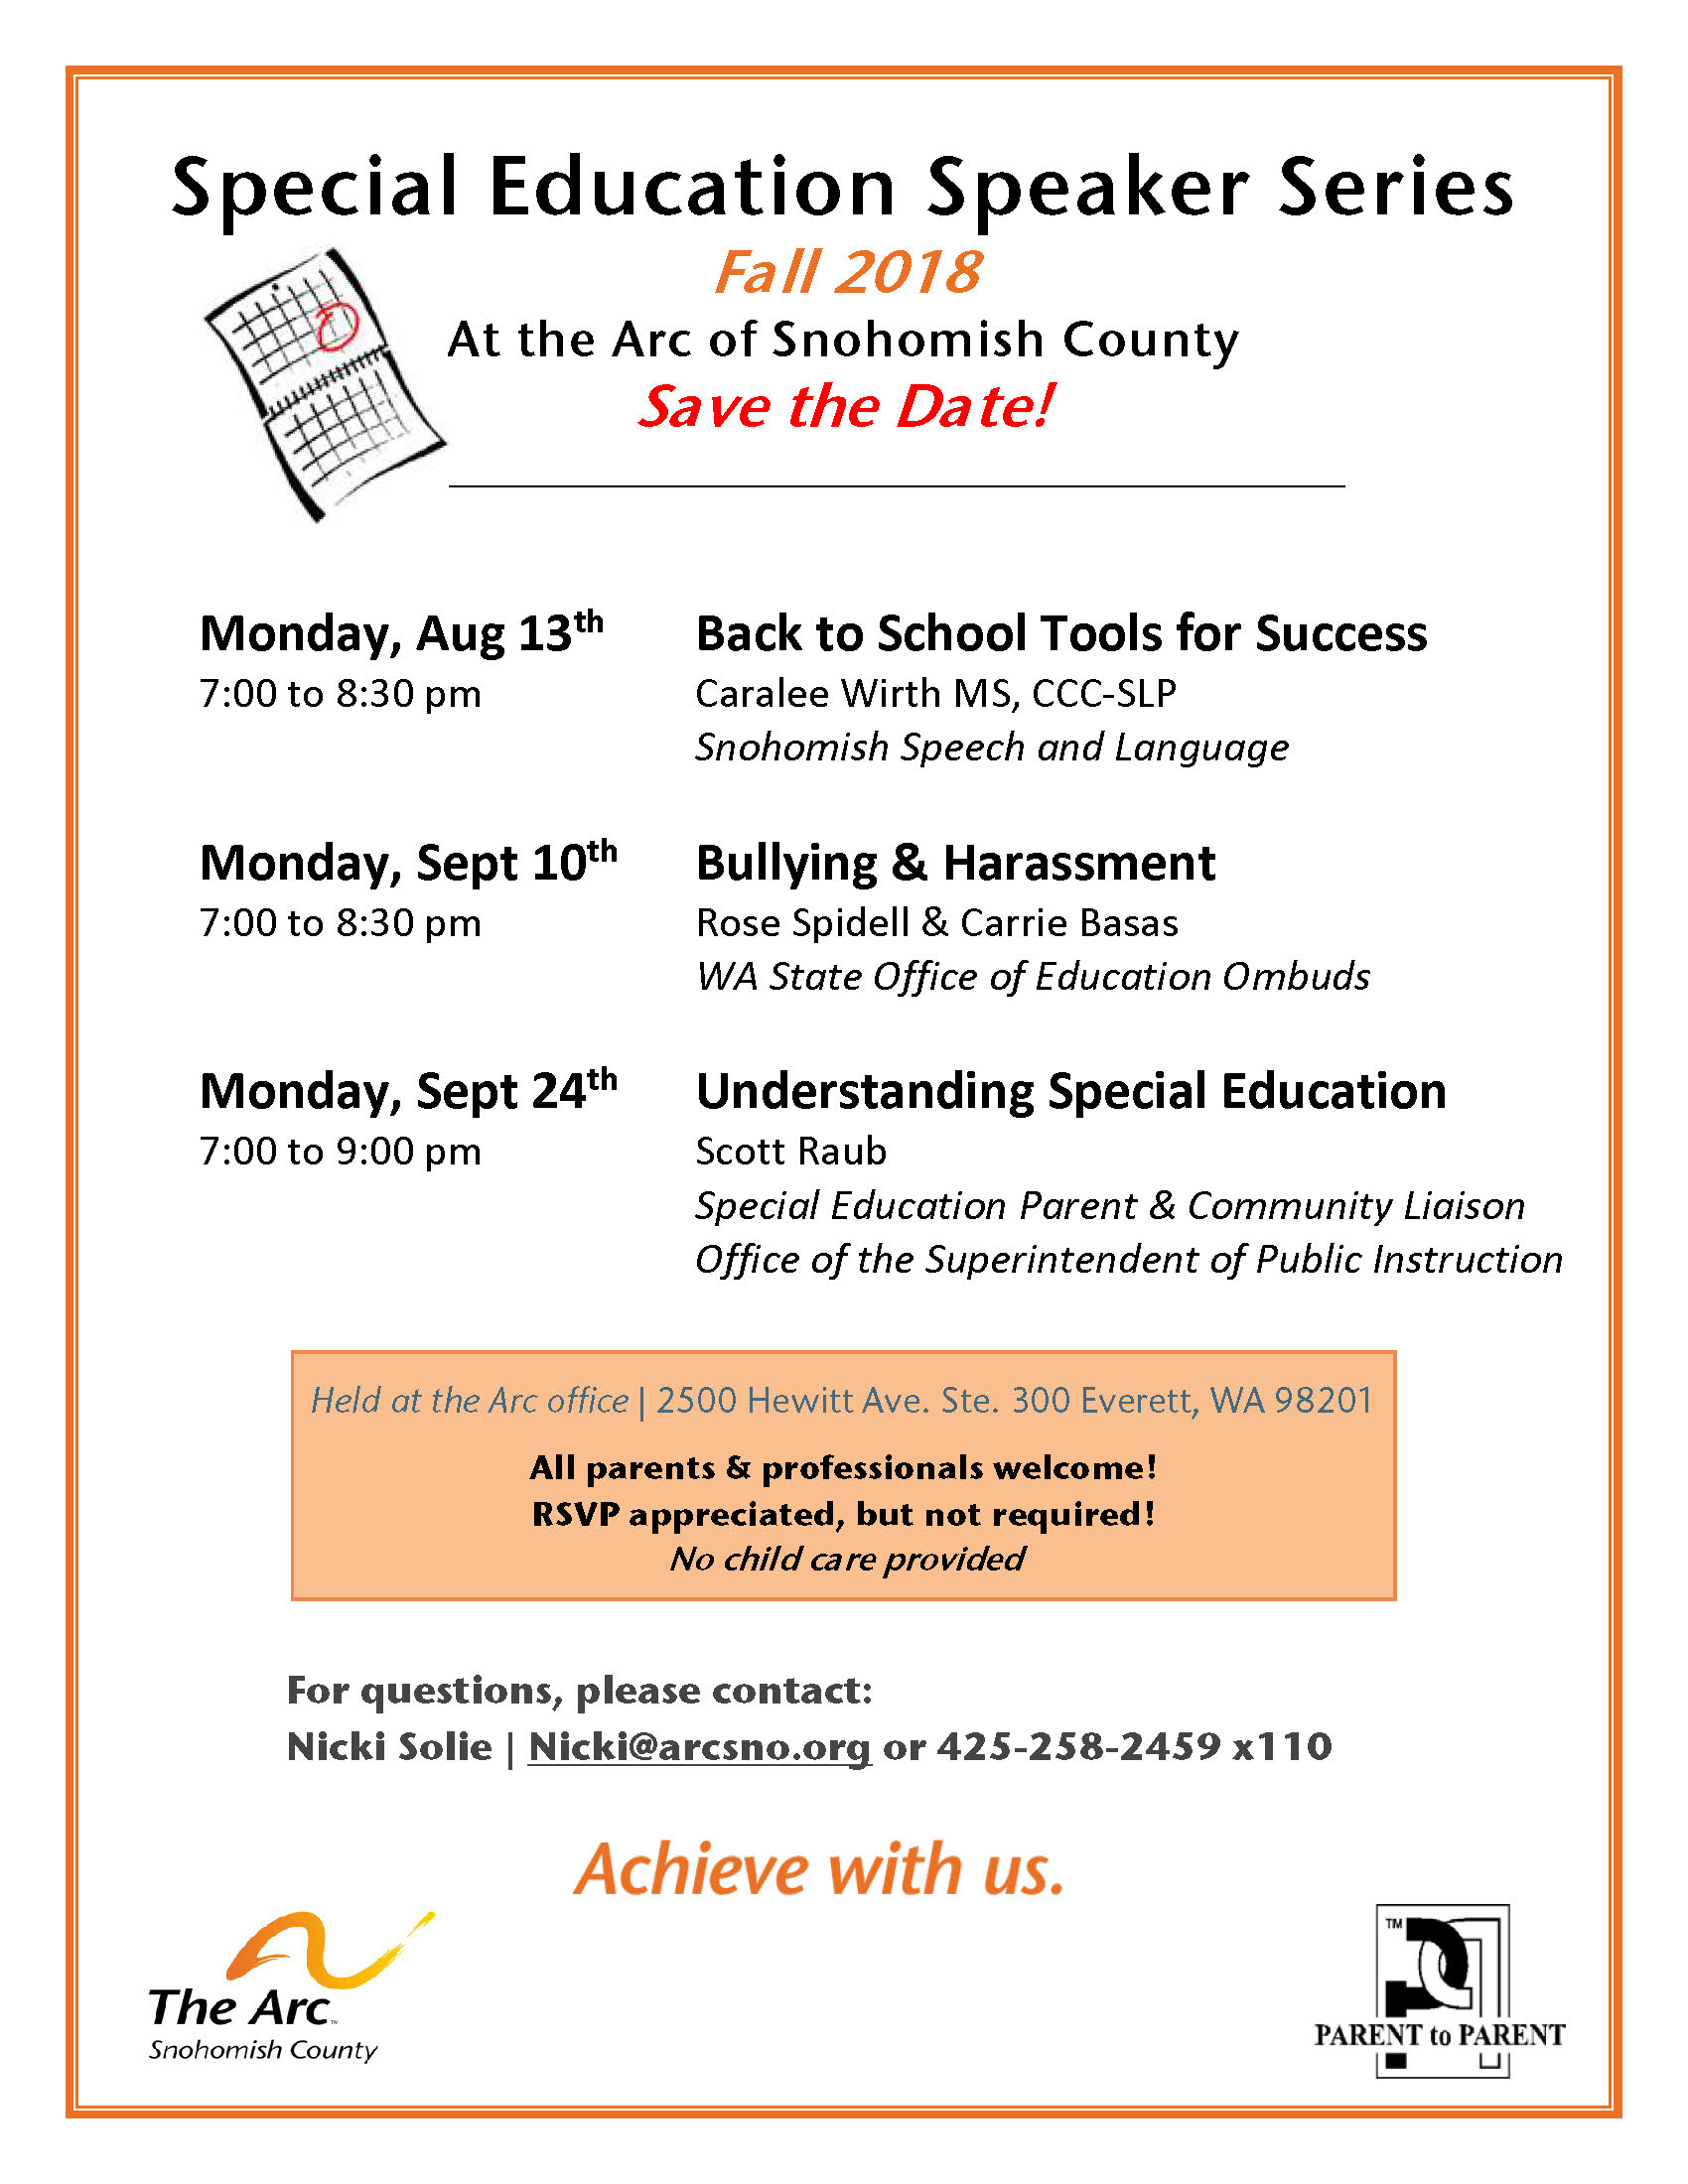 Arc Sp.Ed Speaker Series Fall 2018